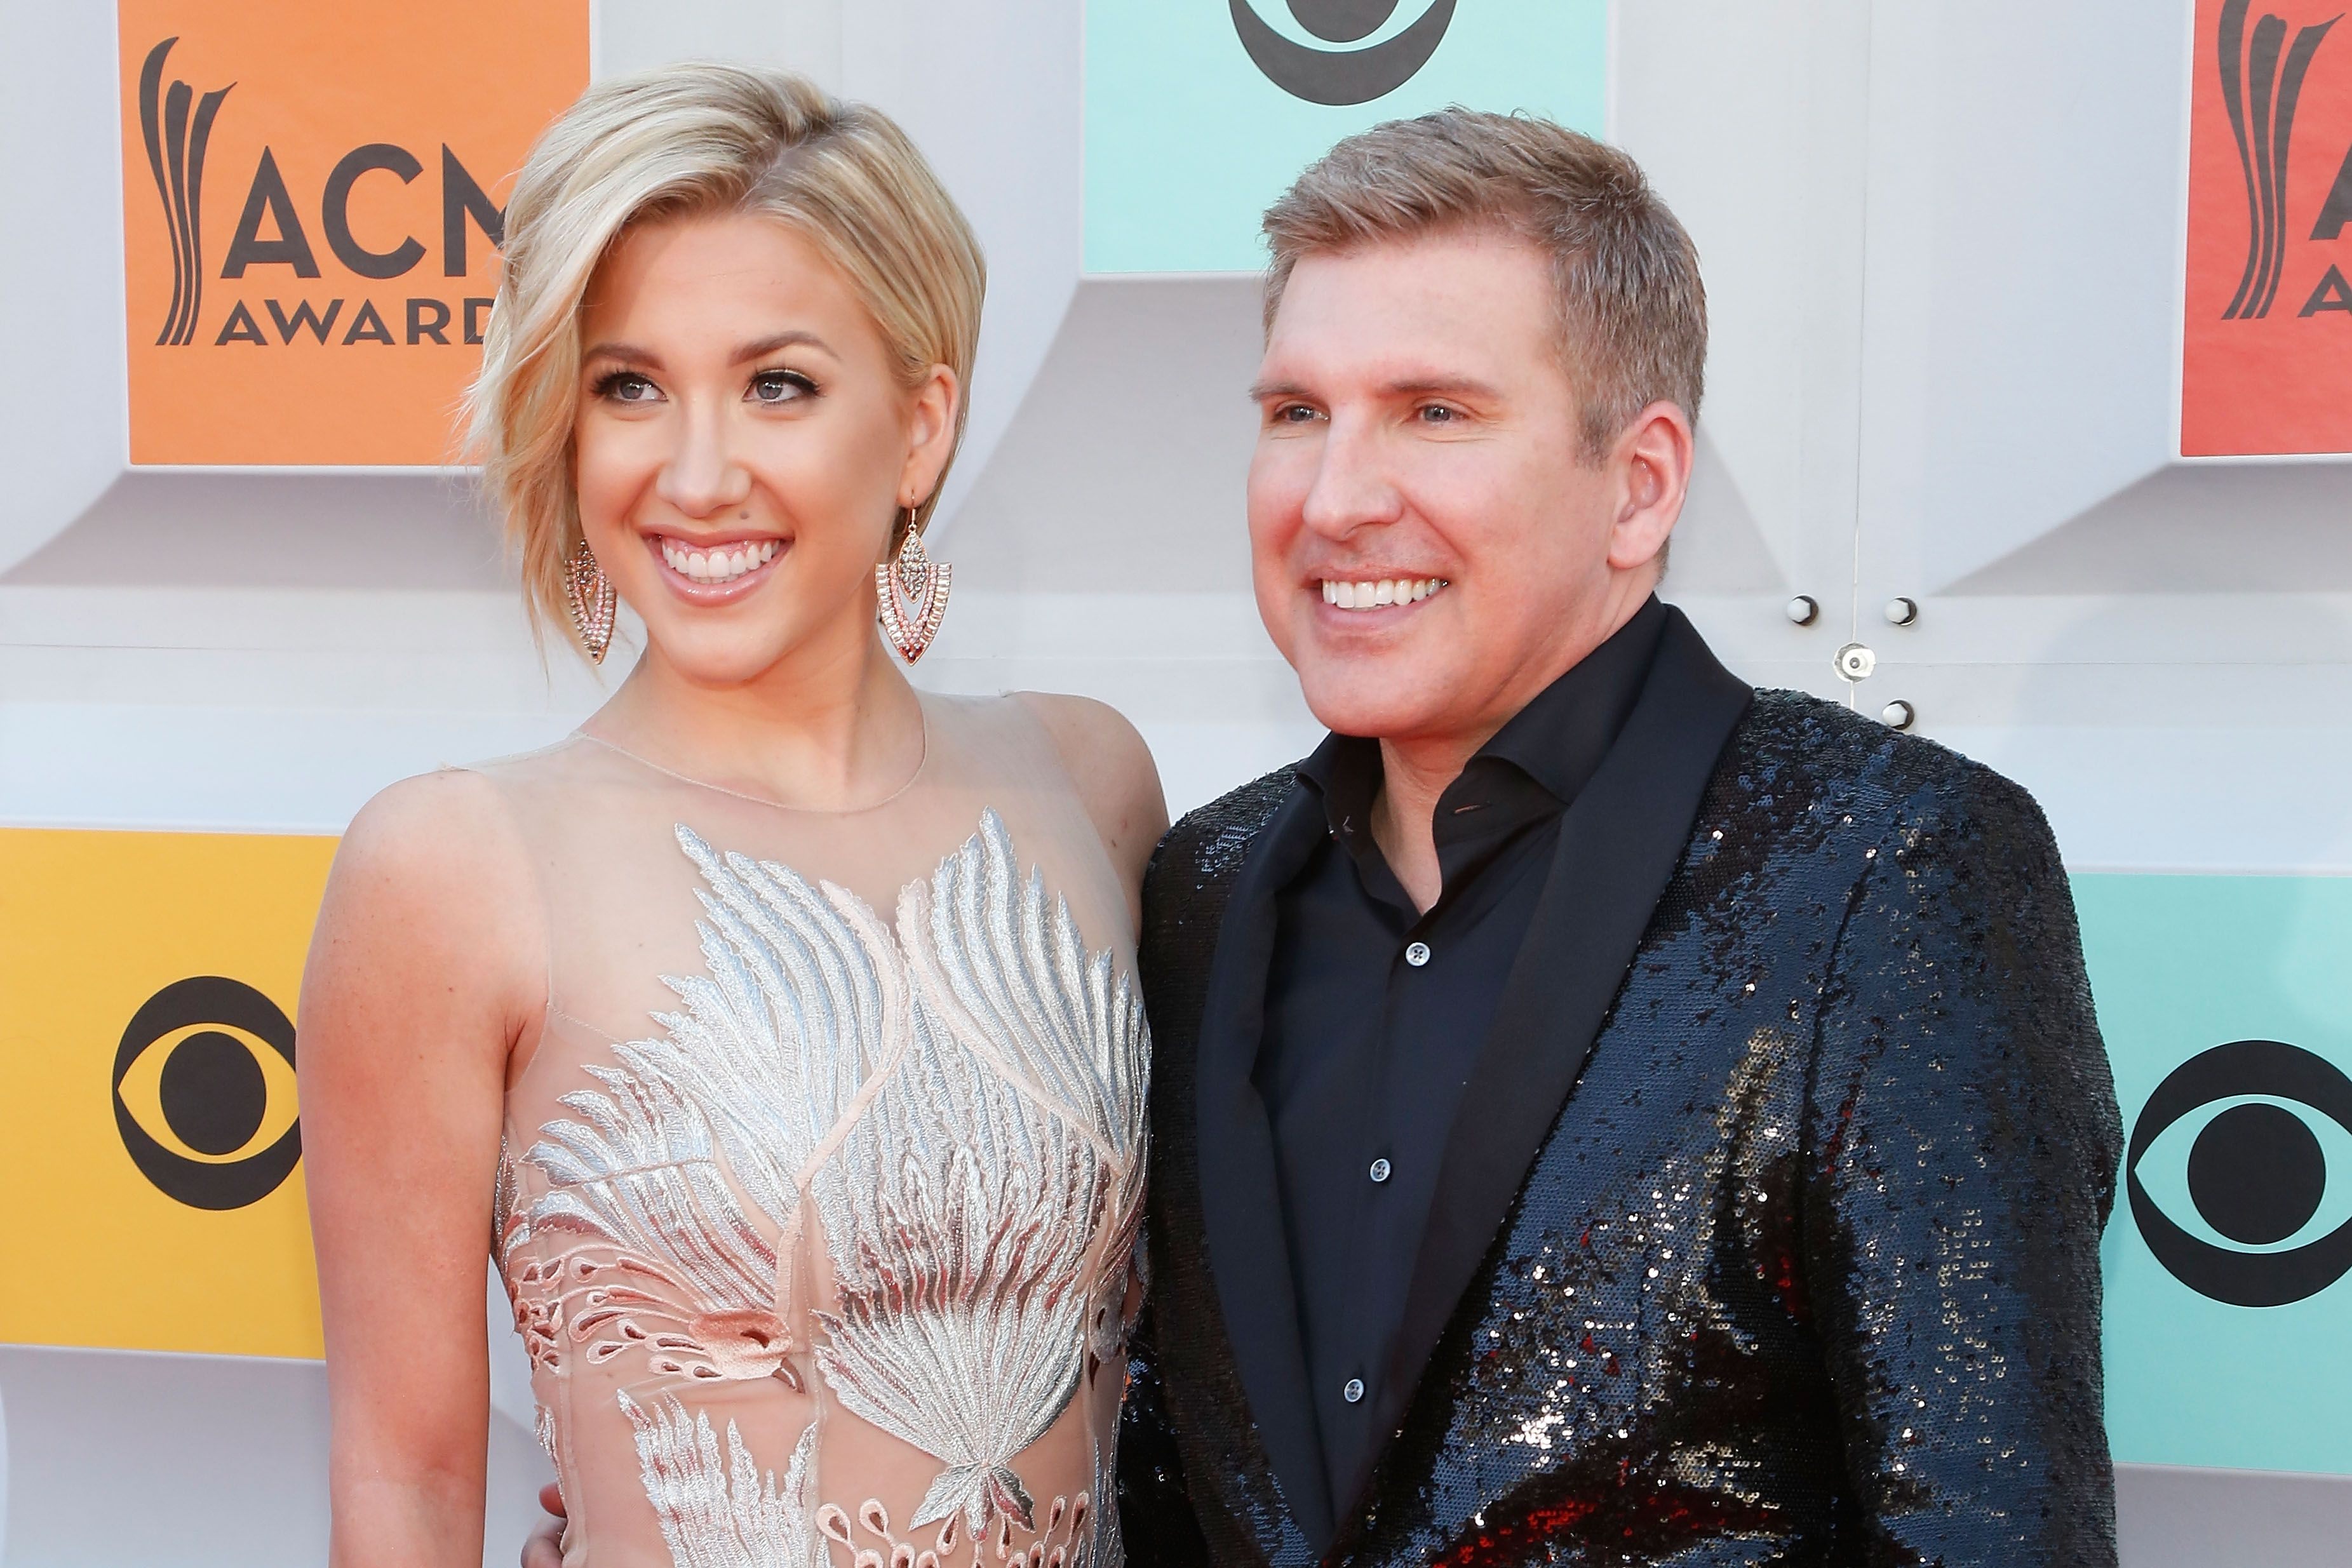 Savannah Chrisley and Todd Chrisley during the 51st Academy of Country Music Awards at MGM Grand Garden Arena on April 3, 2016 in Las Vegas, Nevada. | Source: Getty Images